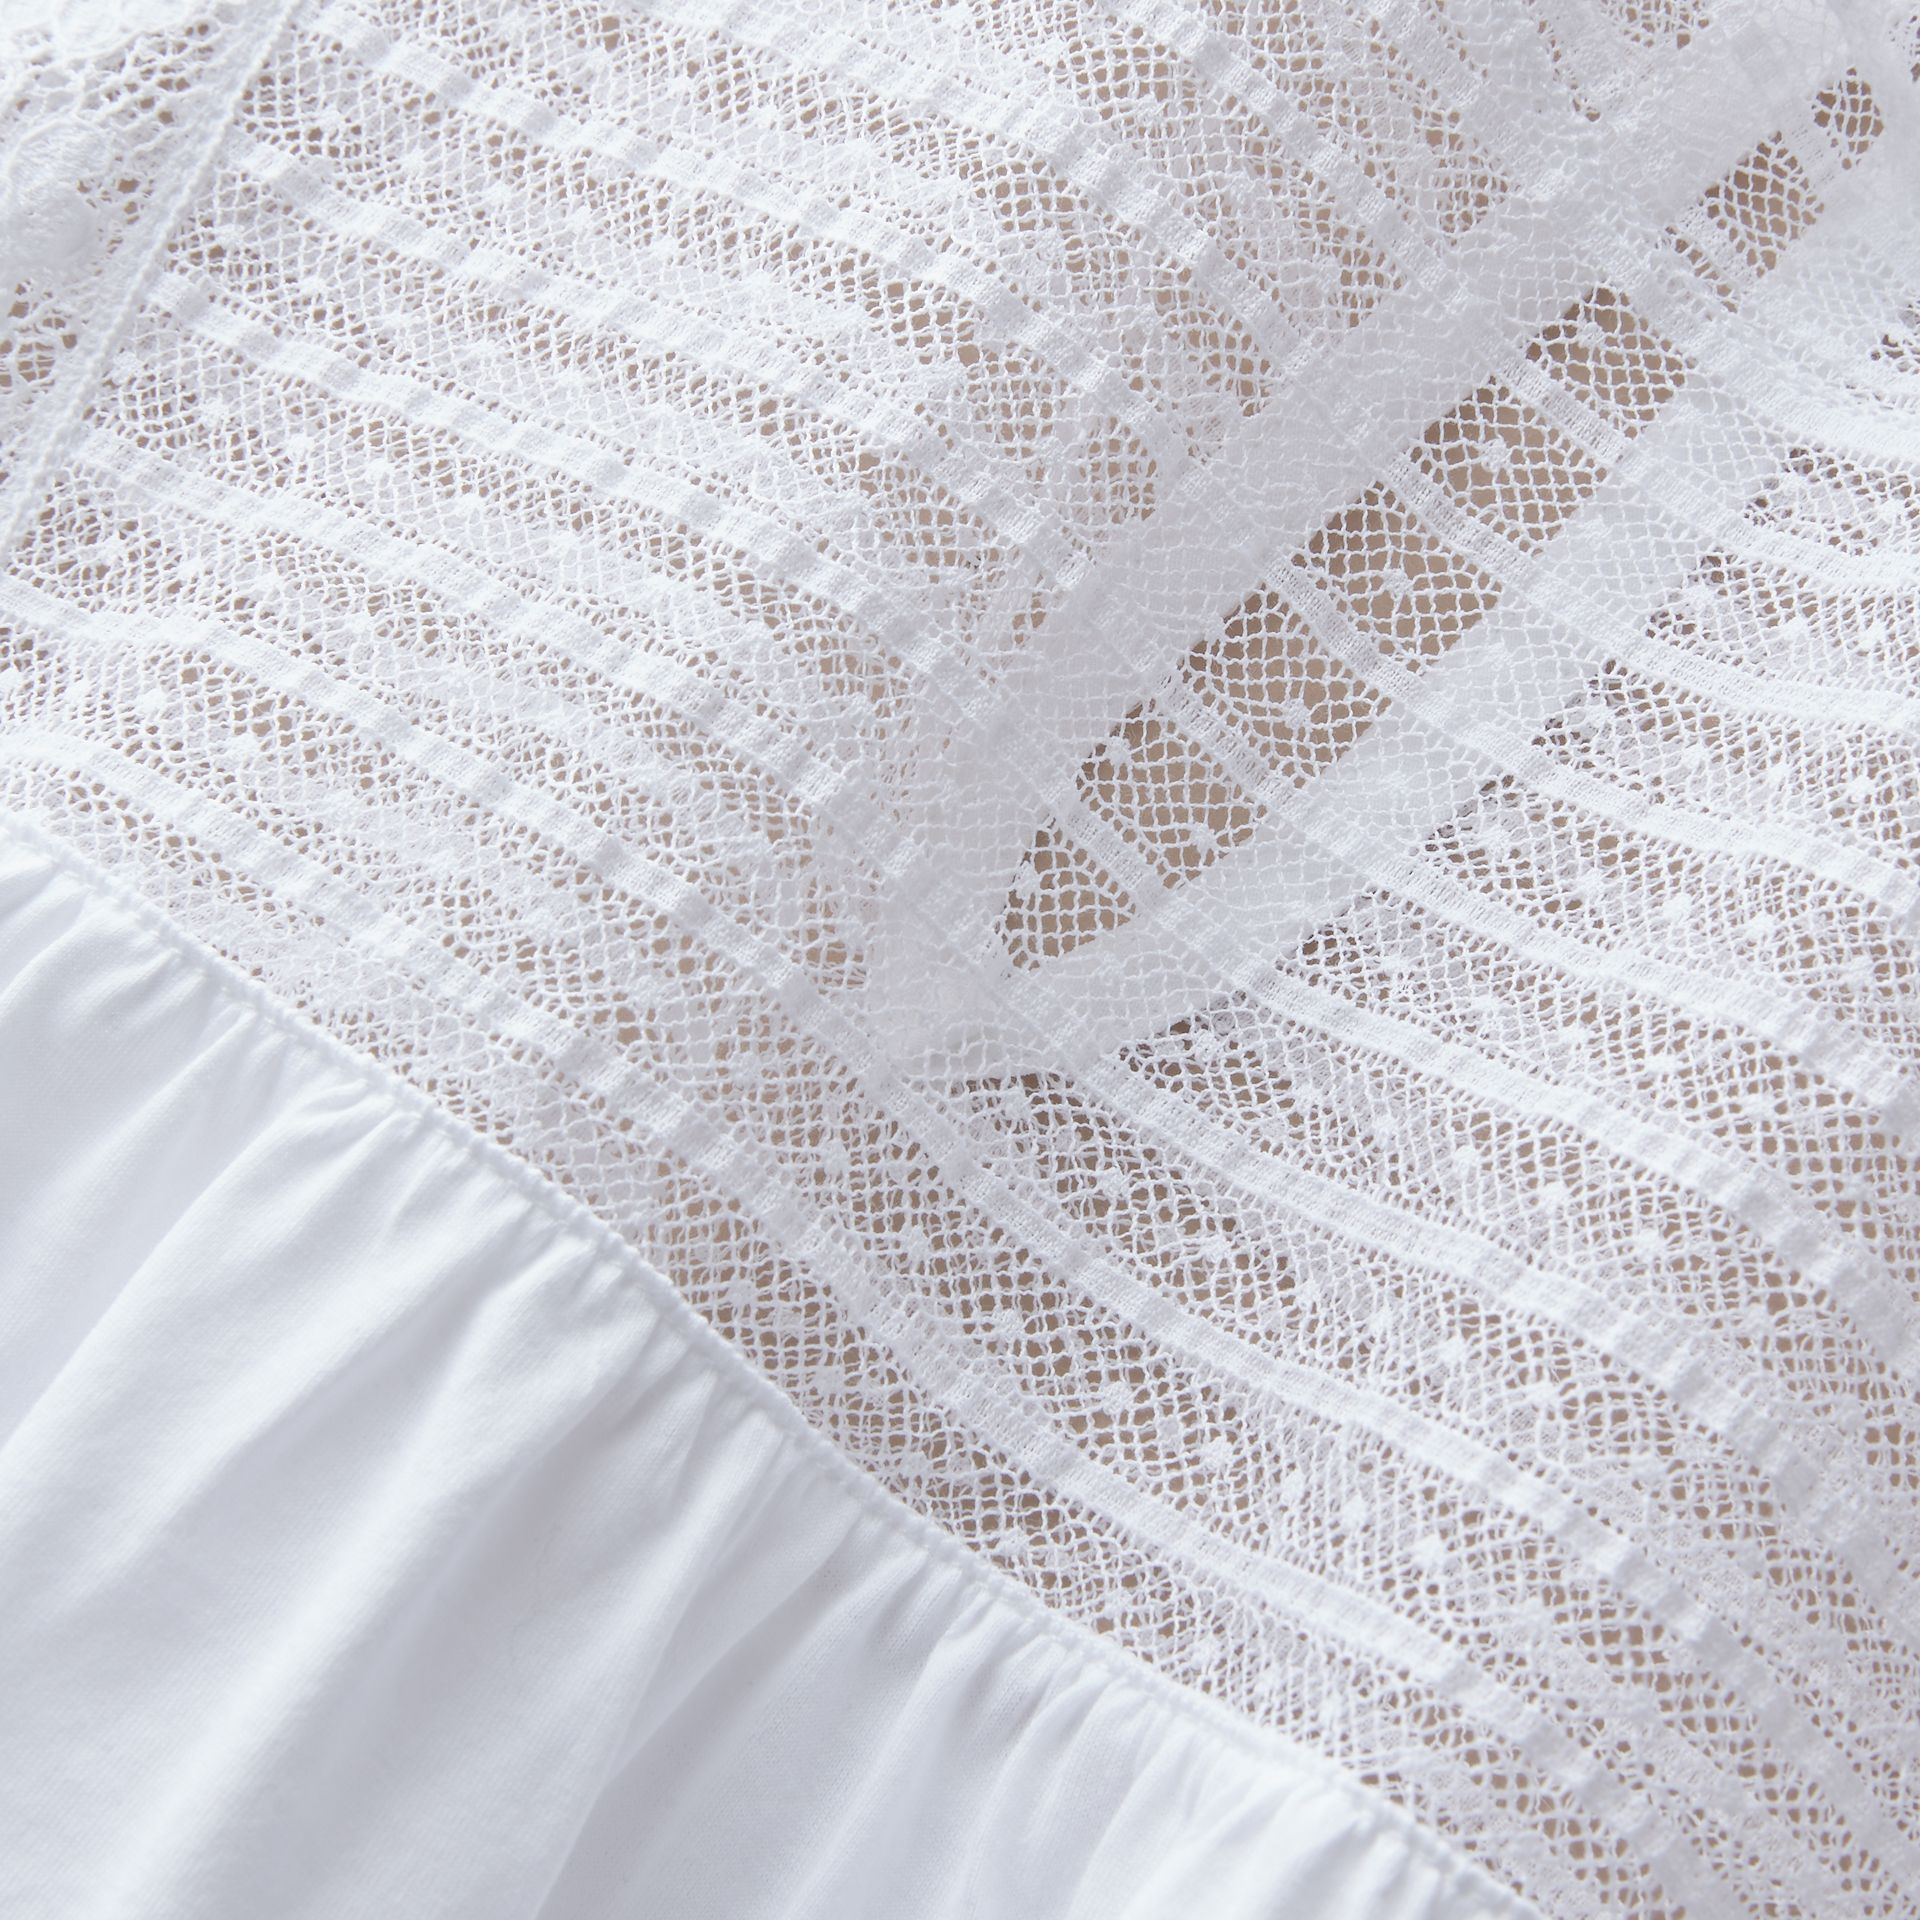 Sleeveless Lace Panel Cotton Top in White - Women | Burberry - gallery image 2